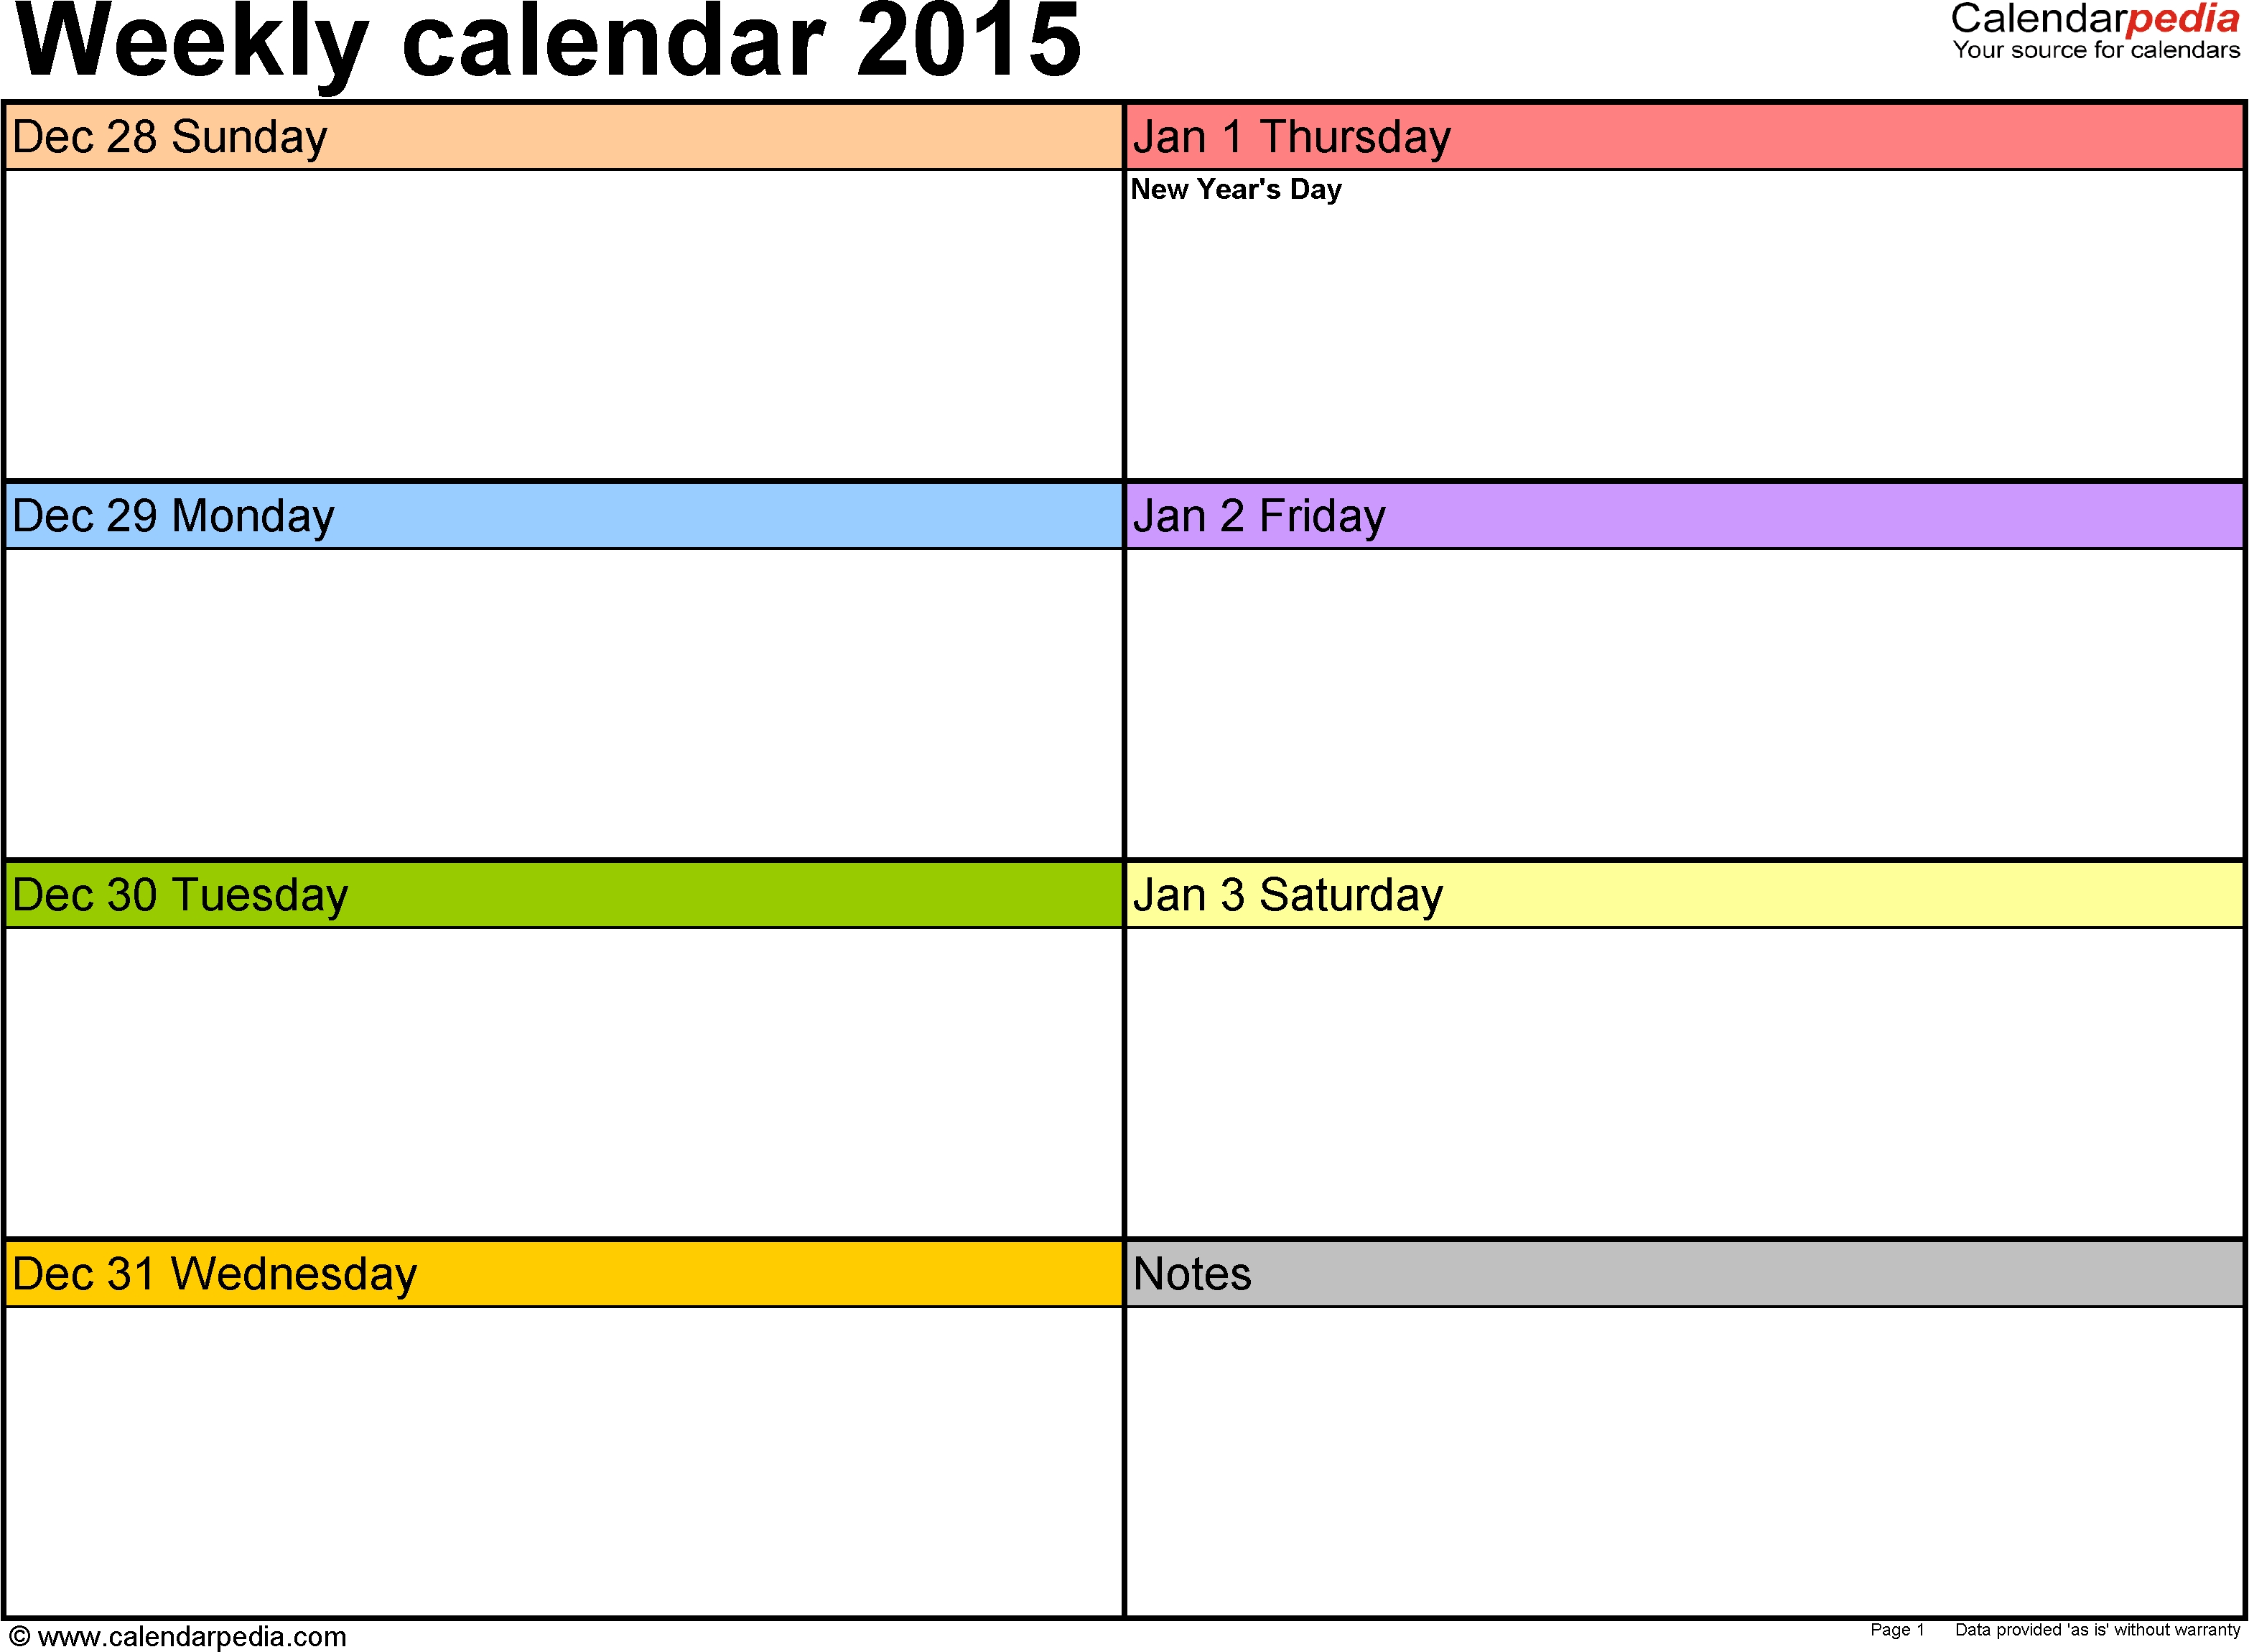 Calendar Printable Images Gallery Category Page 2